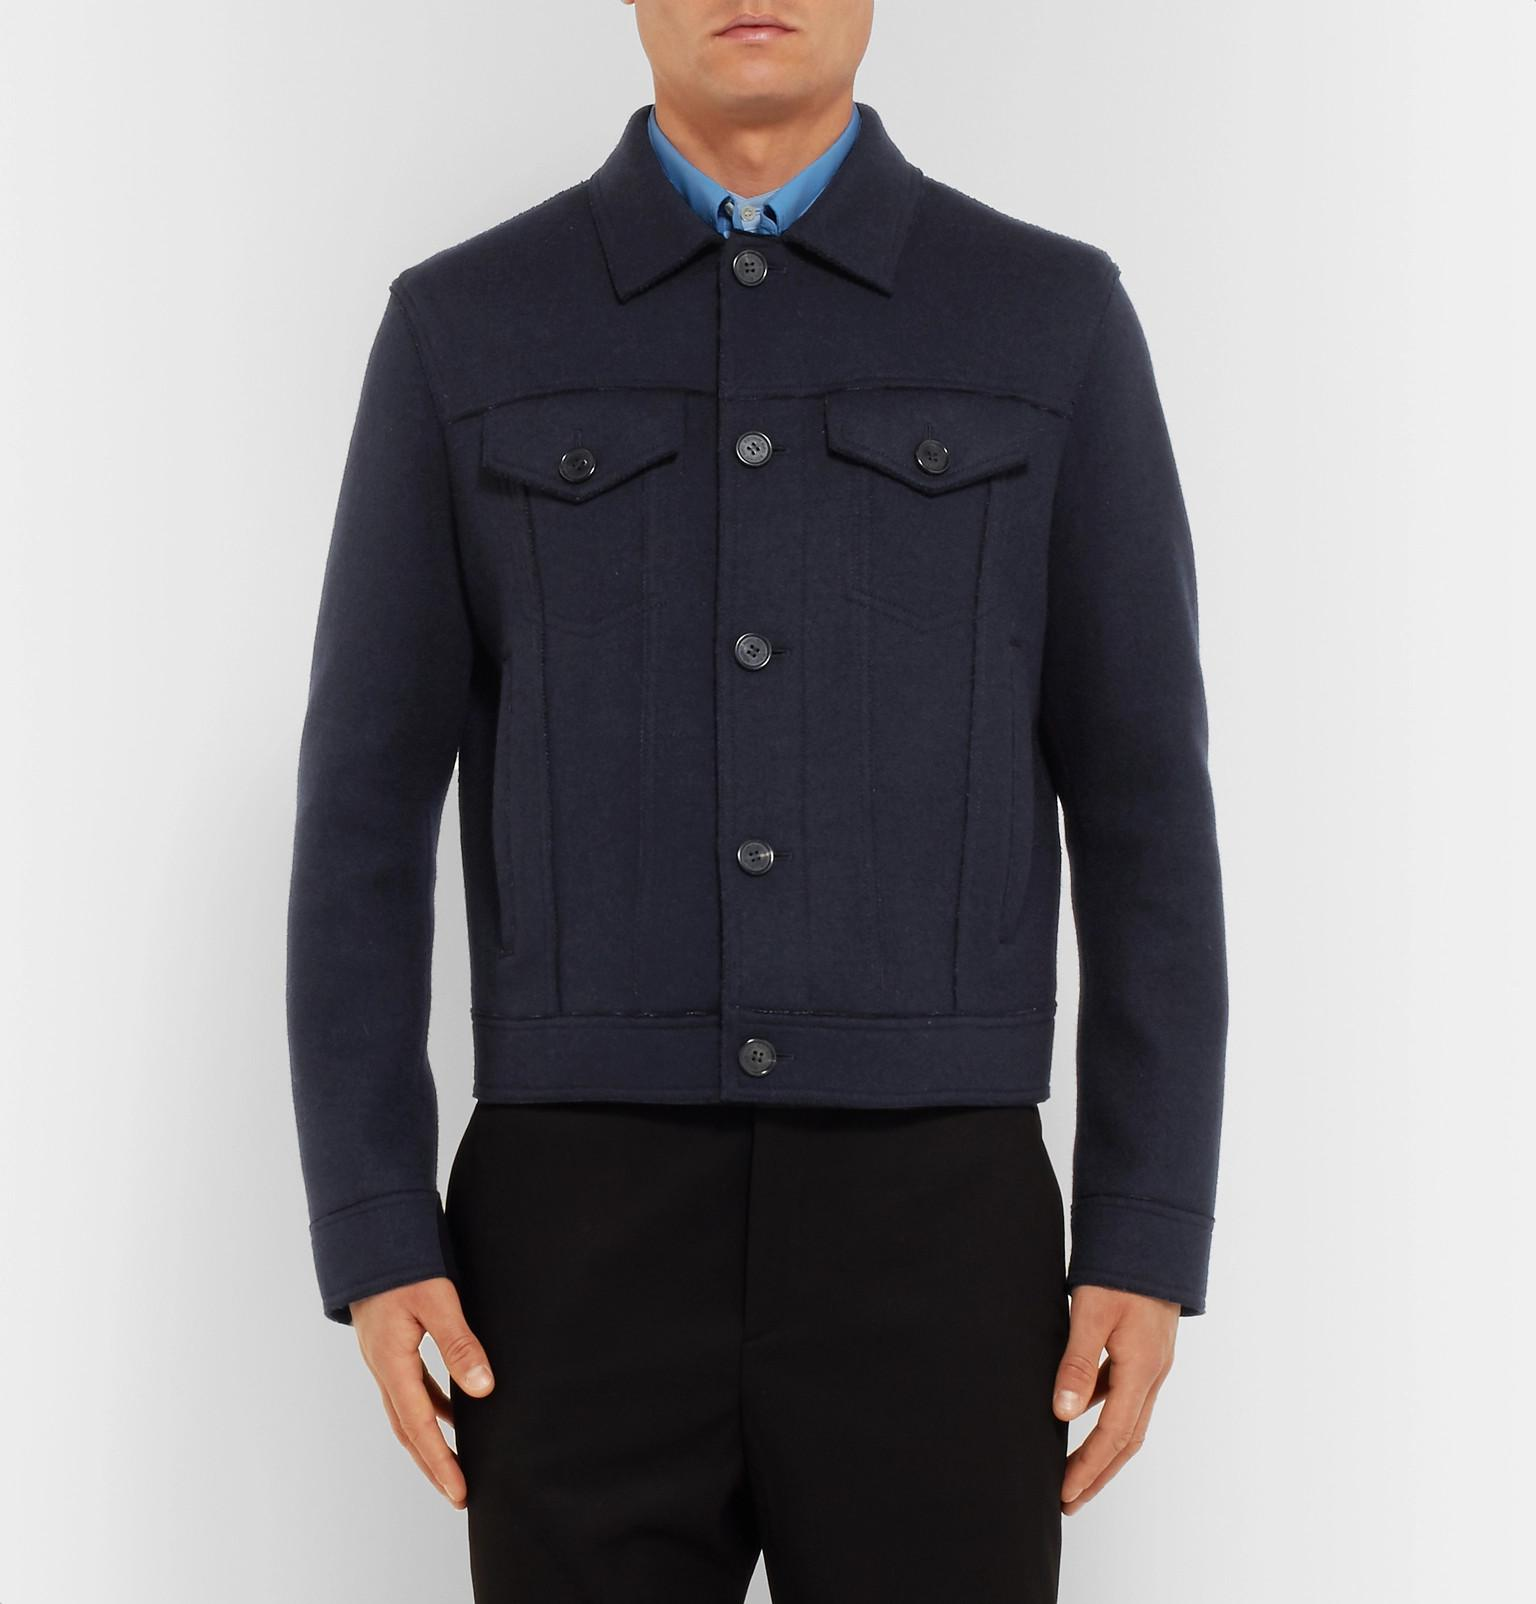 2c97c1322ec7ca neil-barrett-navy-Wool-blend-Trucker-Jacket.jpeg